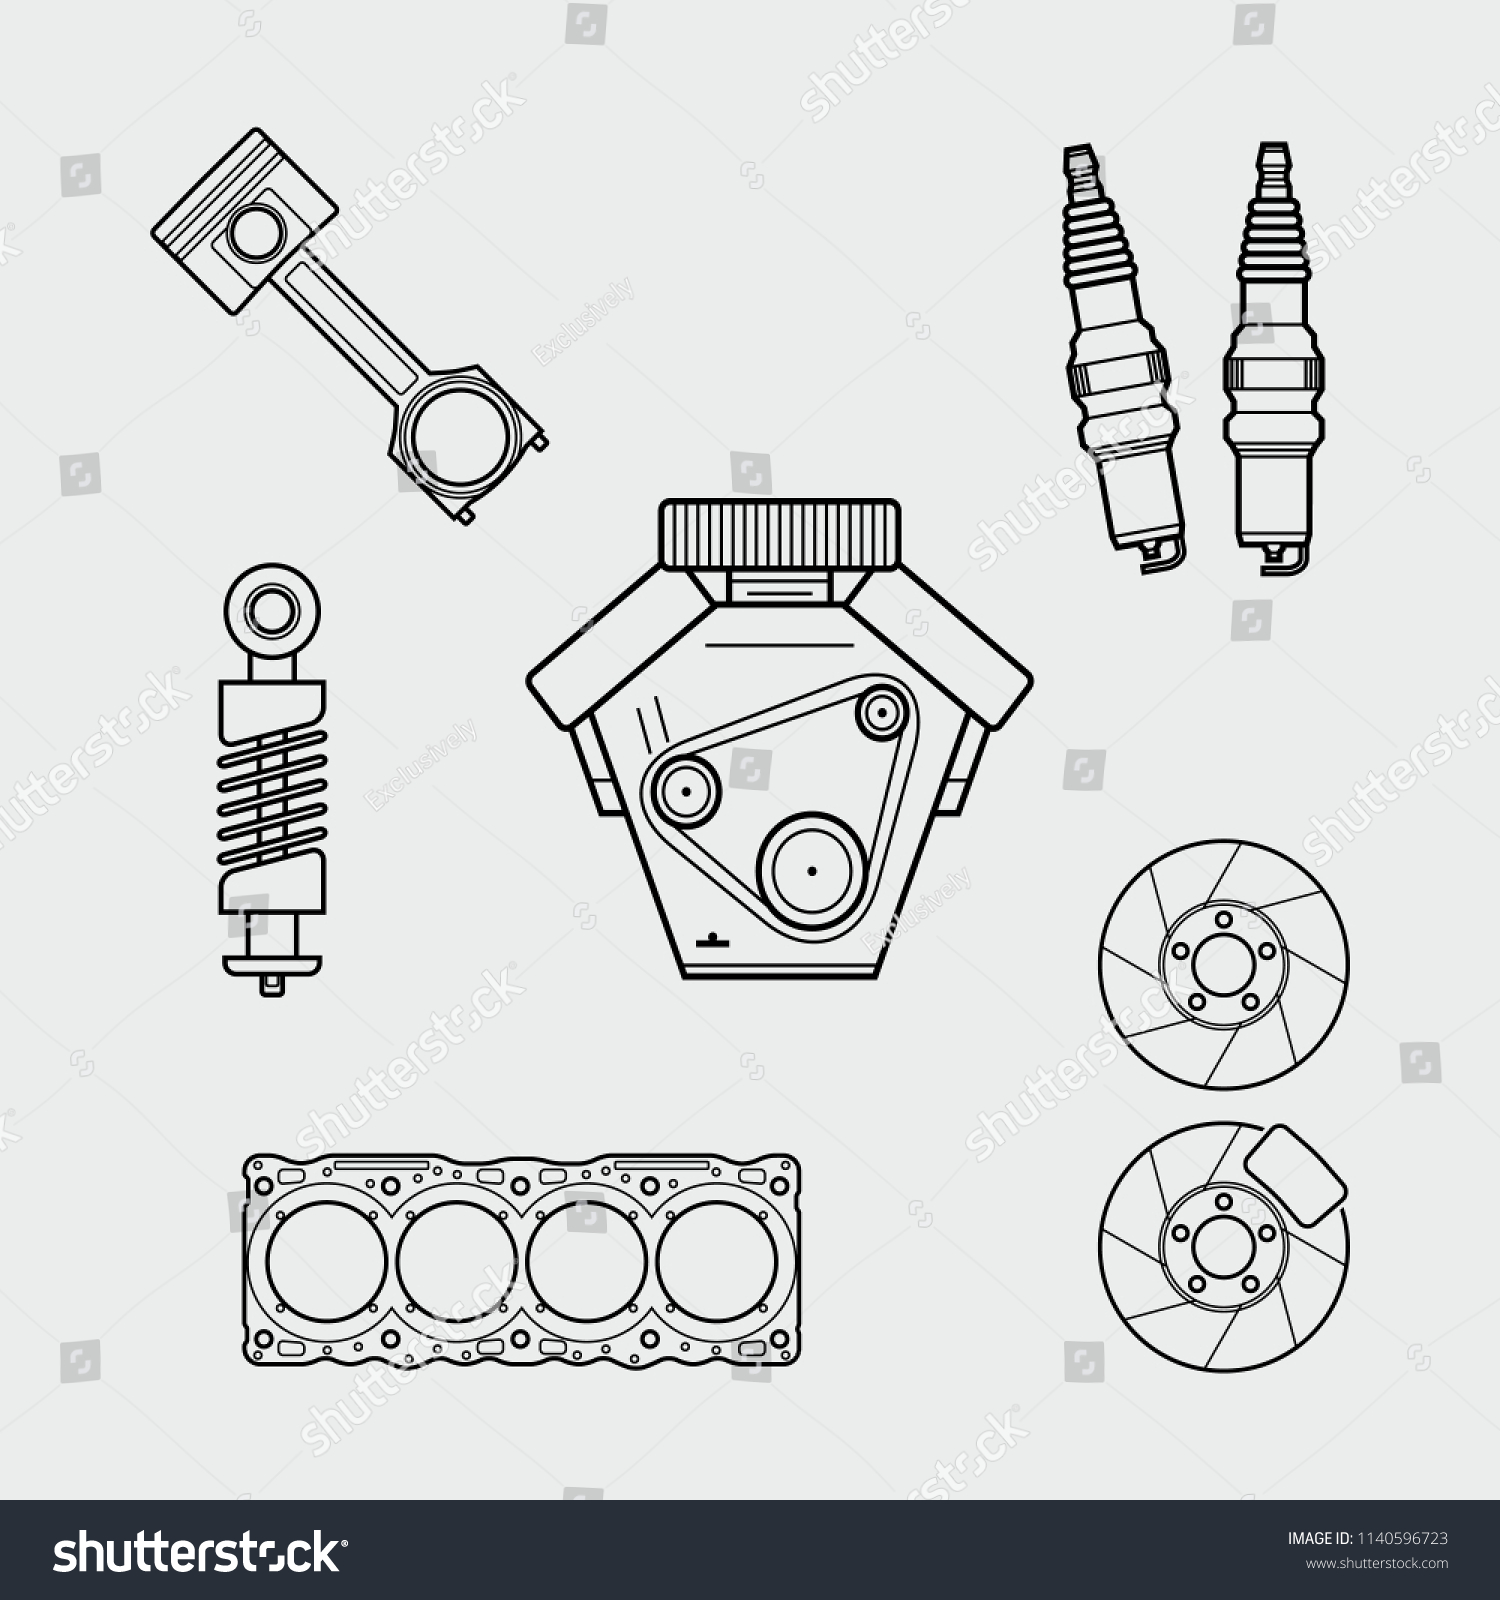 hight resolution of car spare parts outline engine piston shock absorber spark plugs block of cylinders brake disc vector eps10